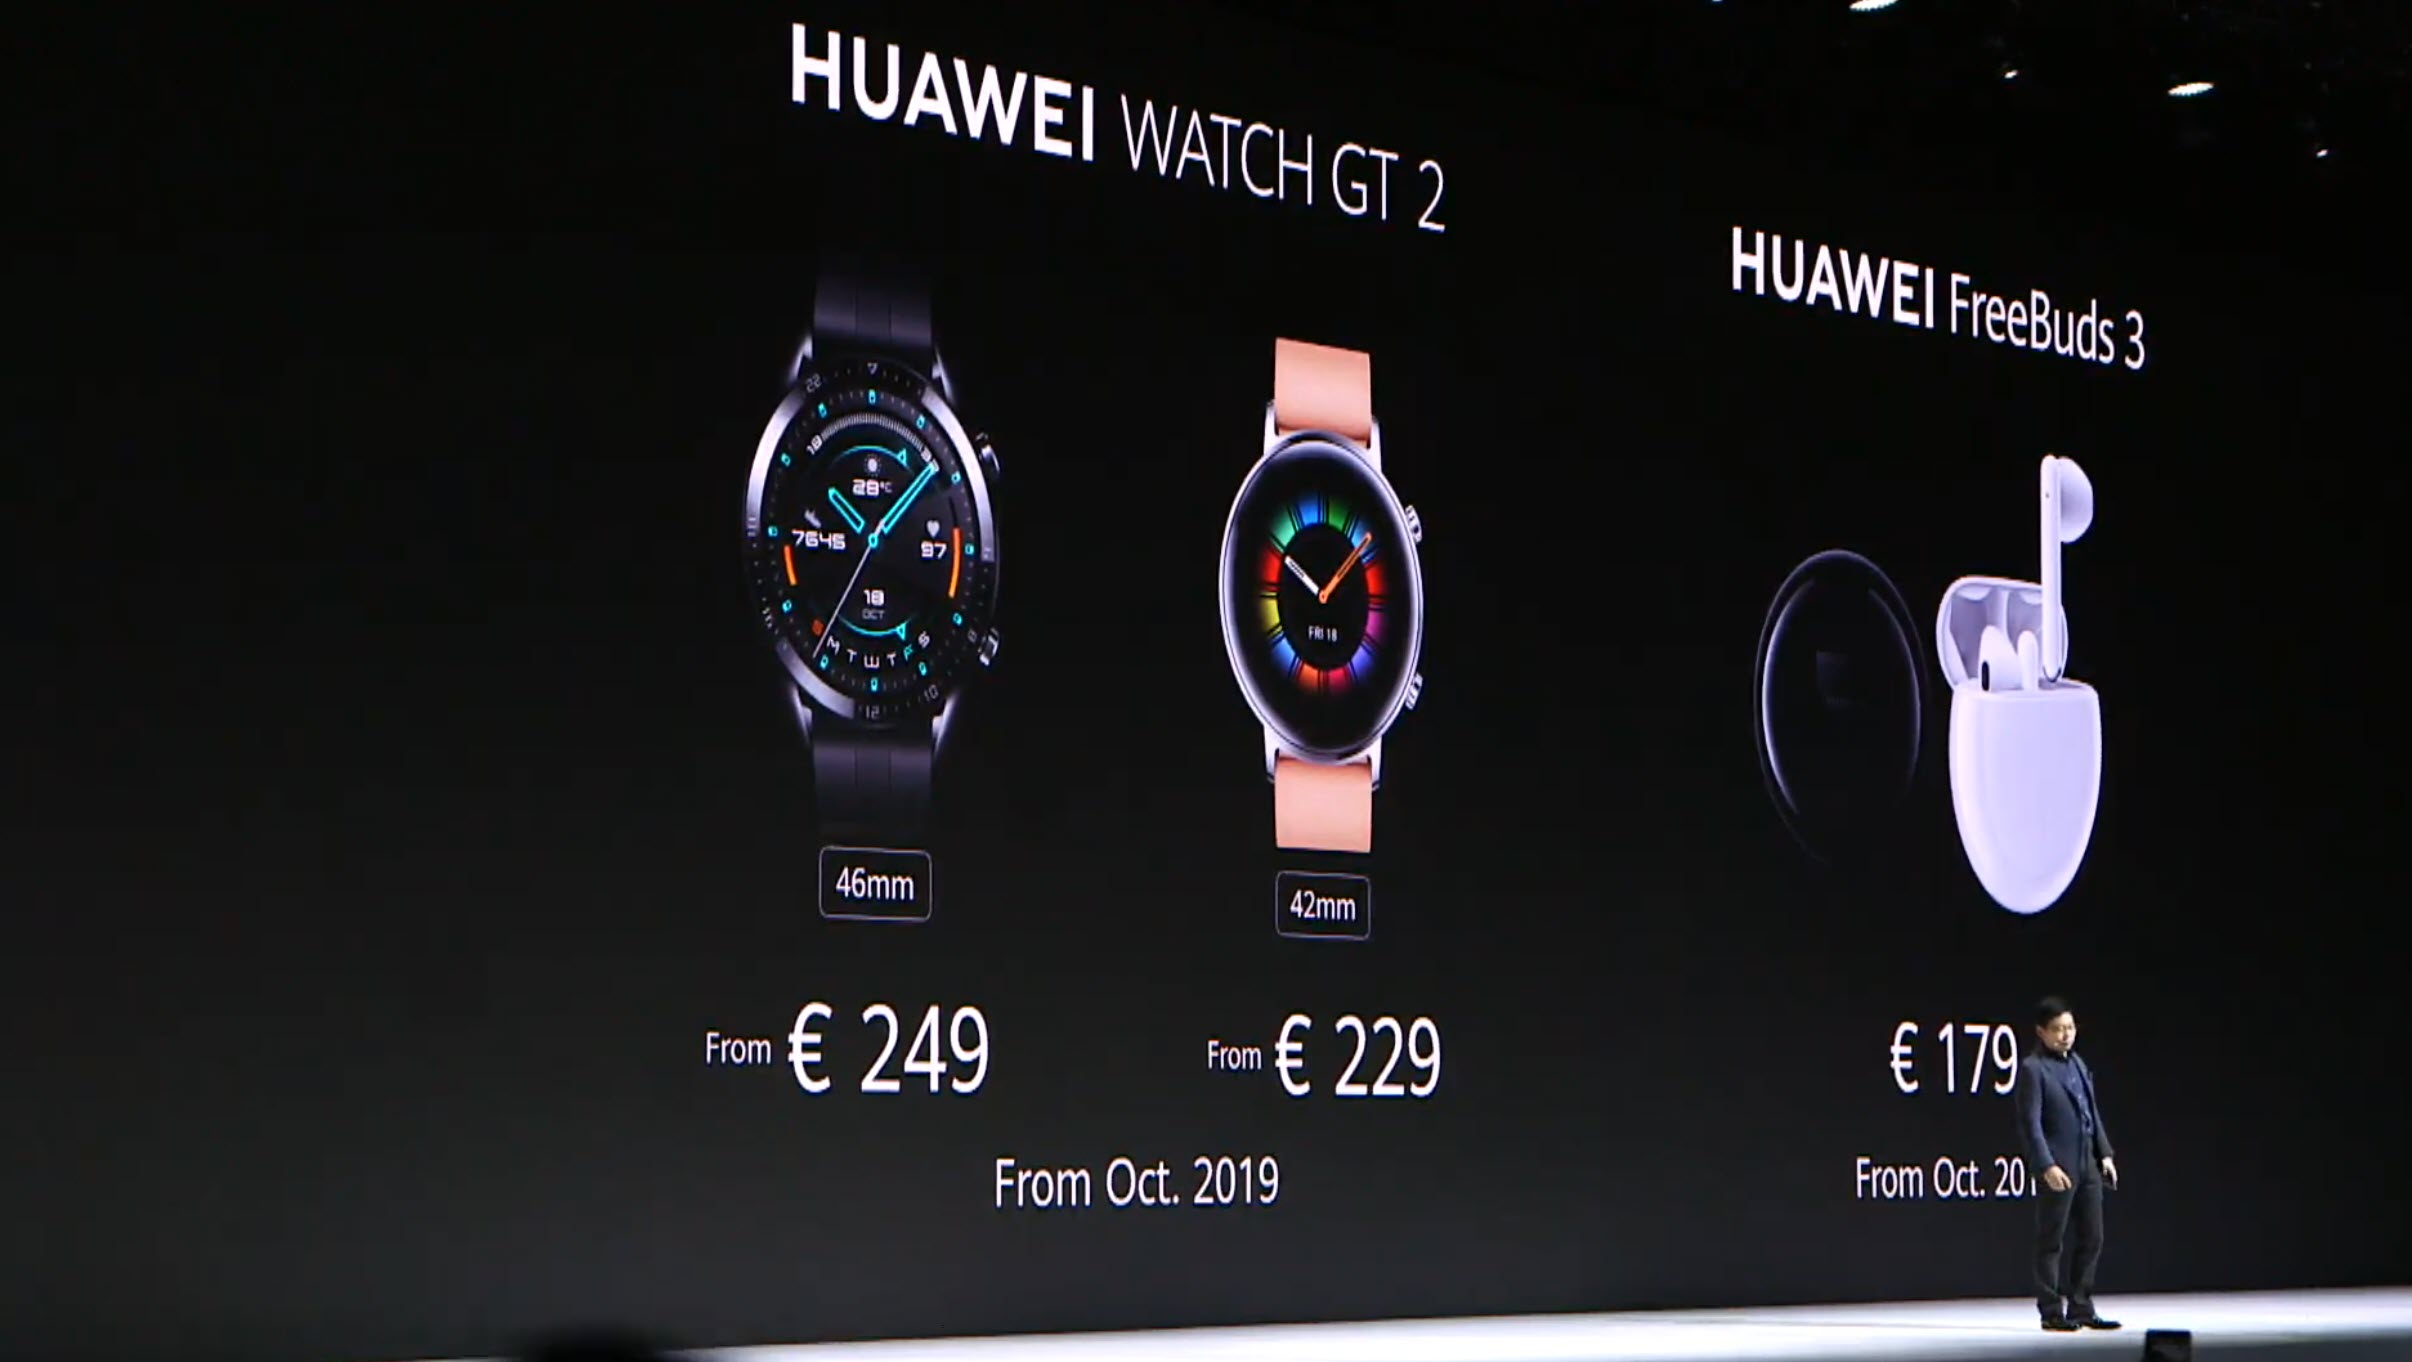 Huawei unveils a stylish new smartwatch with stellar battery life